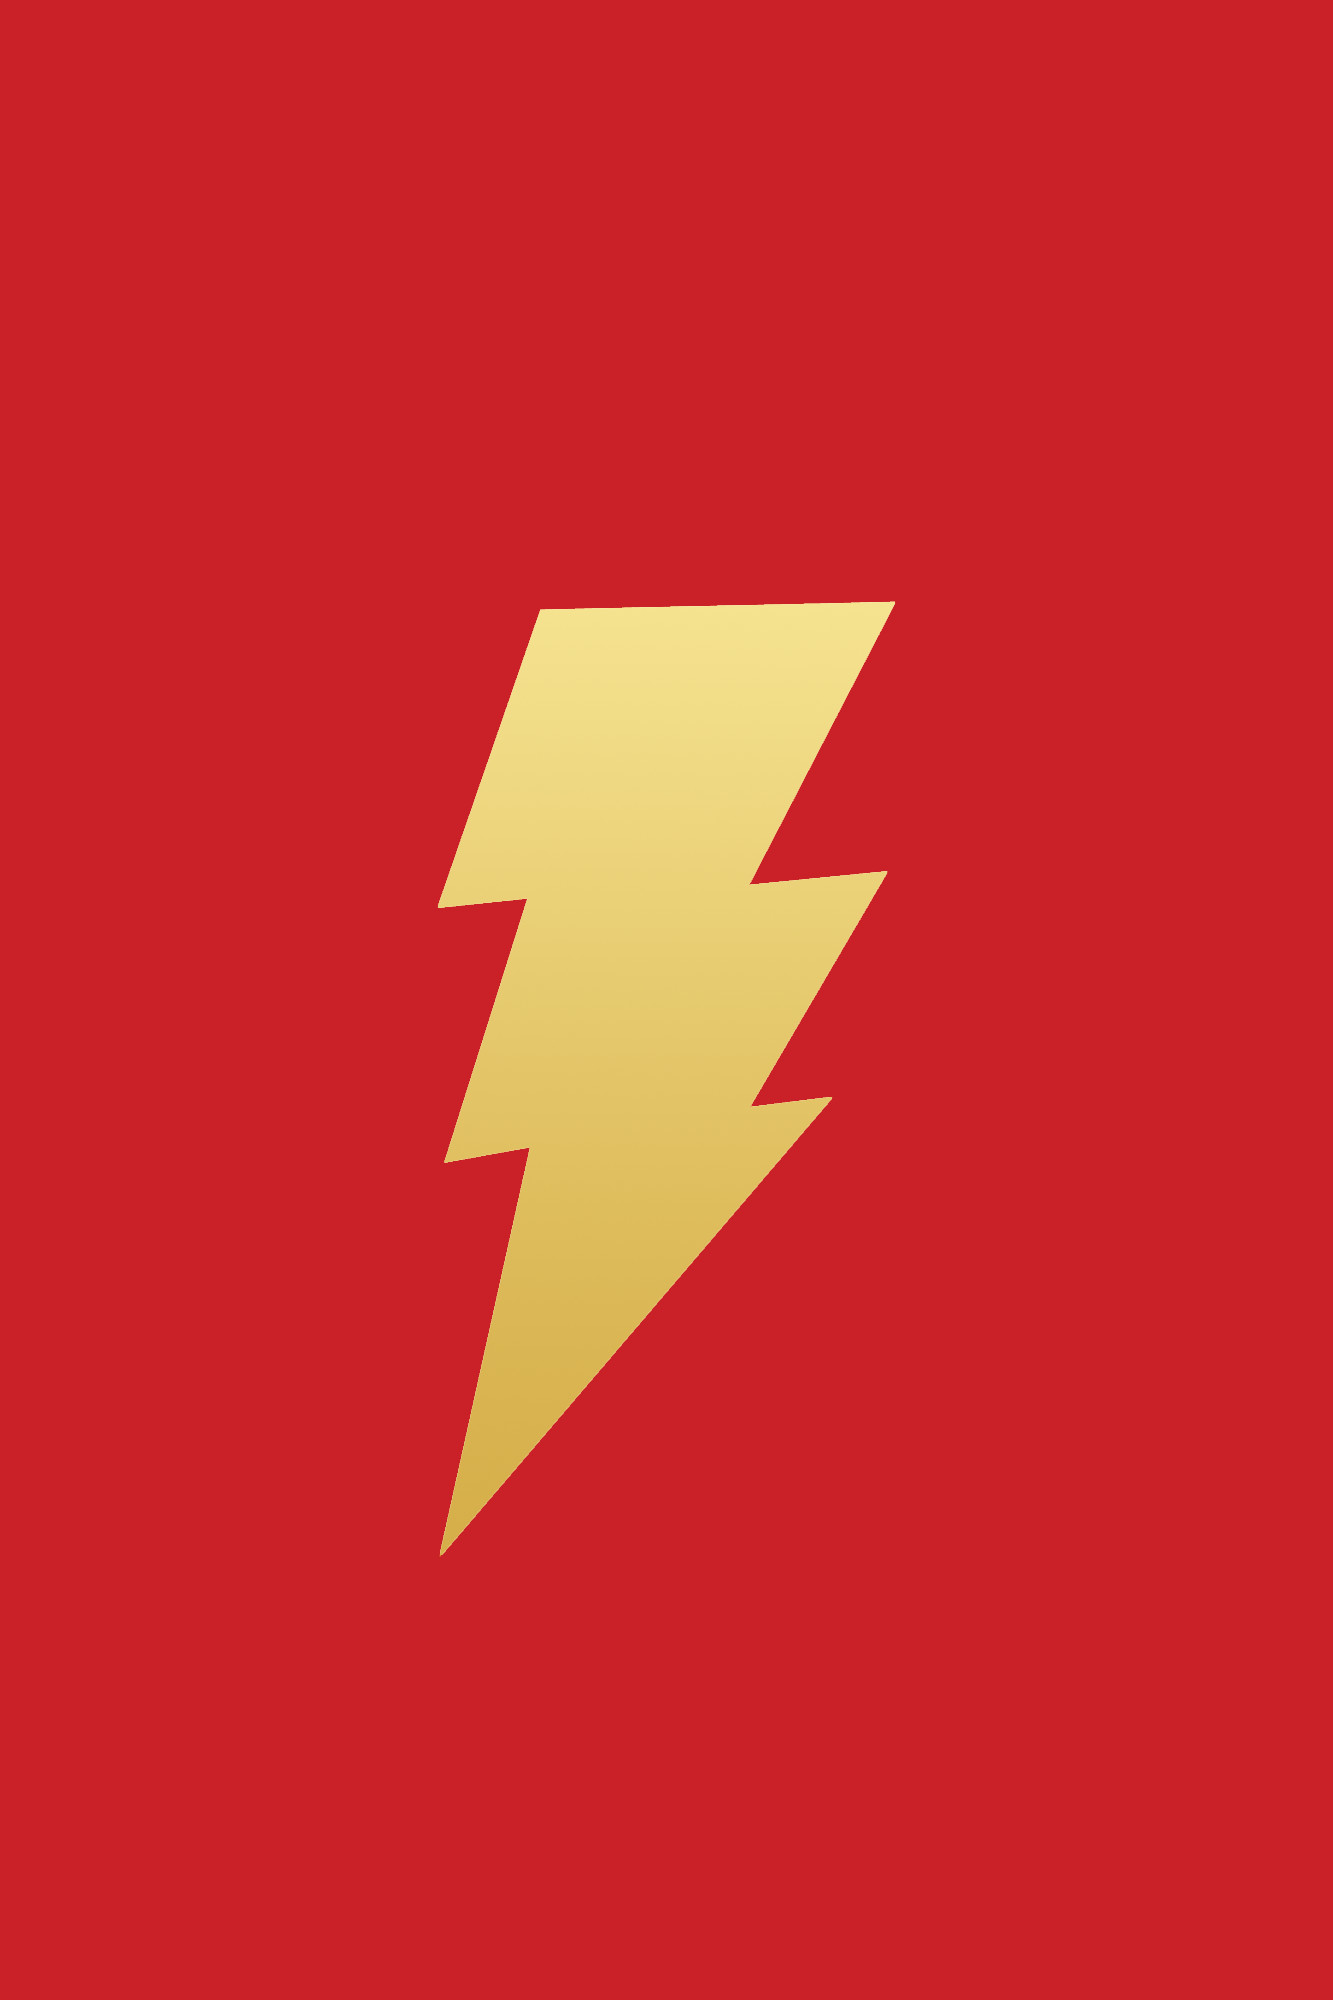 flash wallpapers, pics of the flash superhero